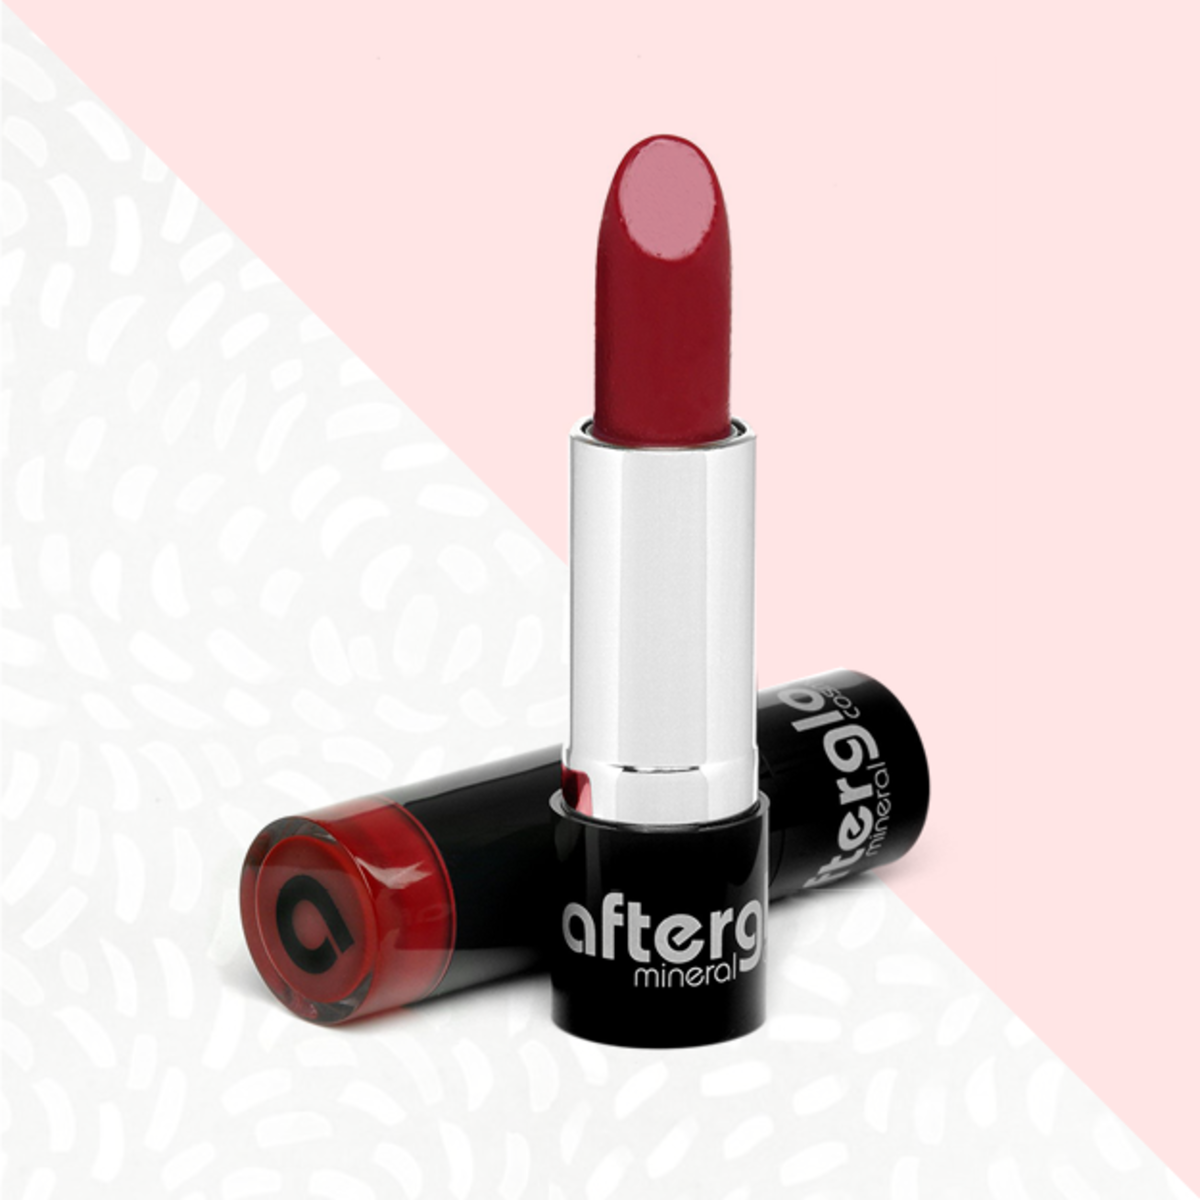 Afterglow, $26